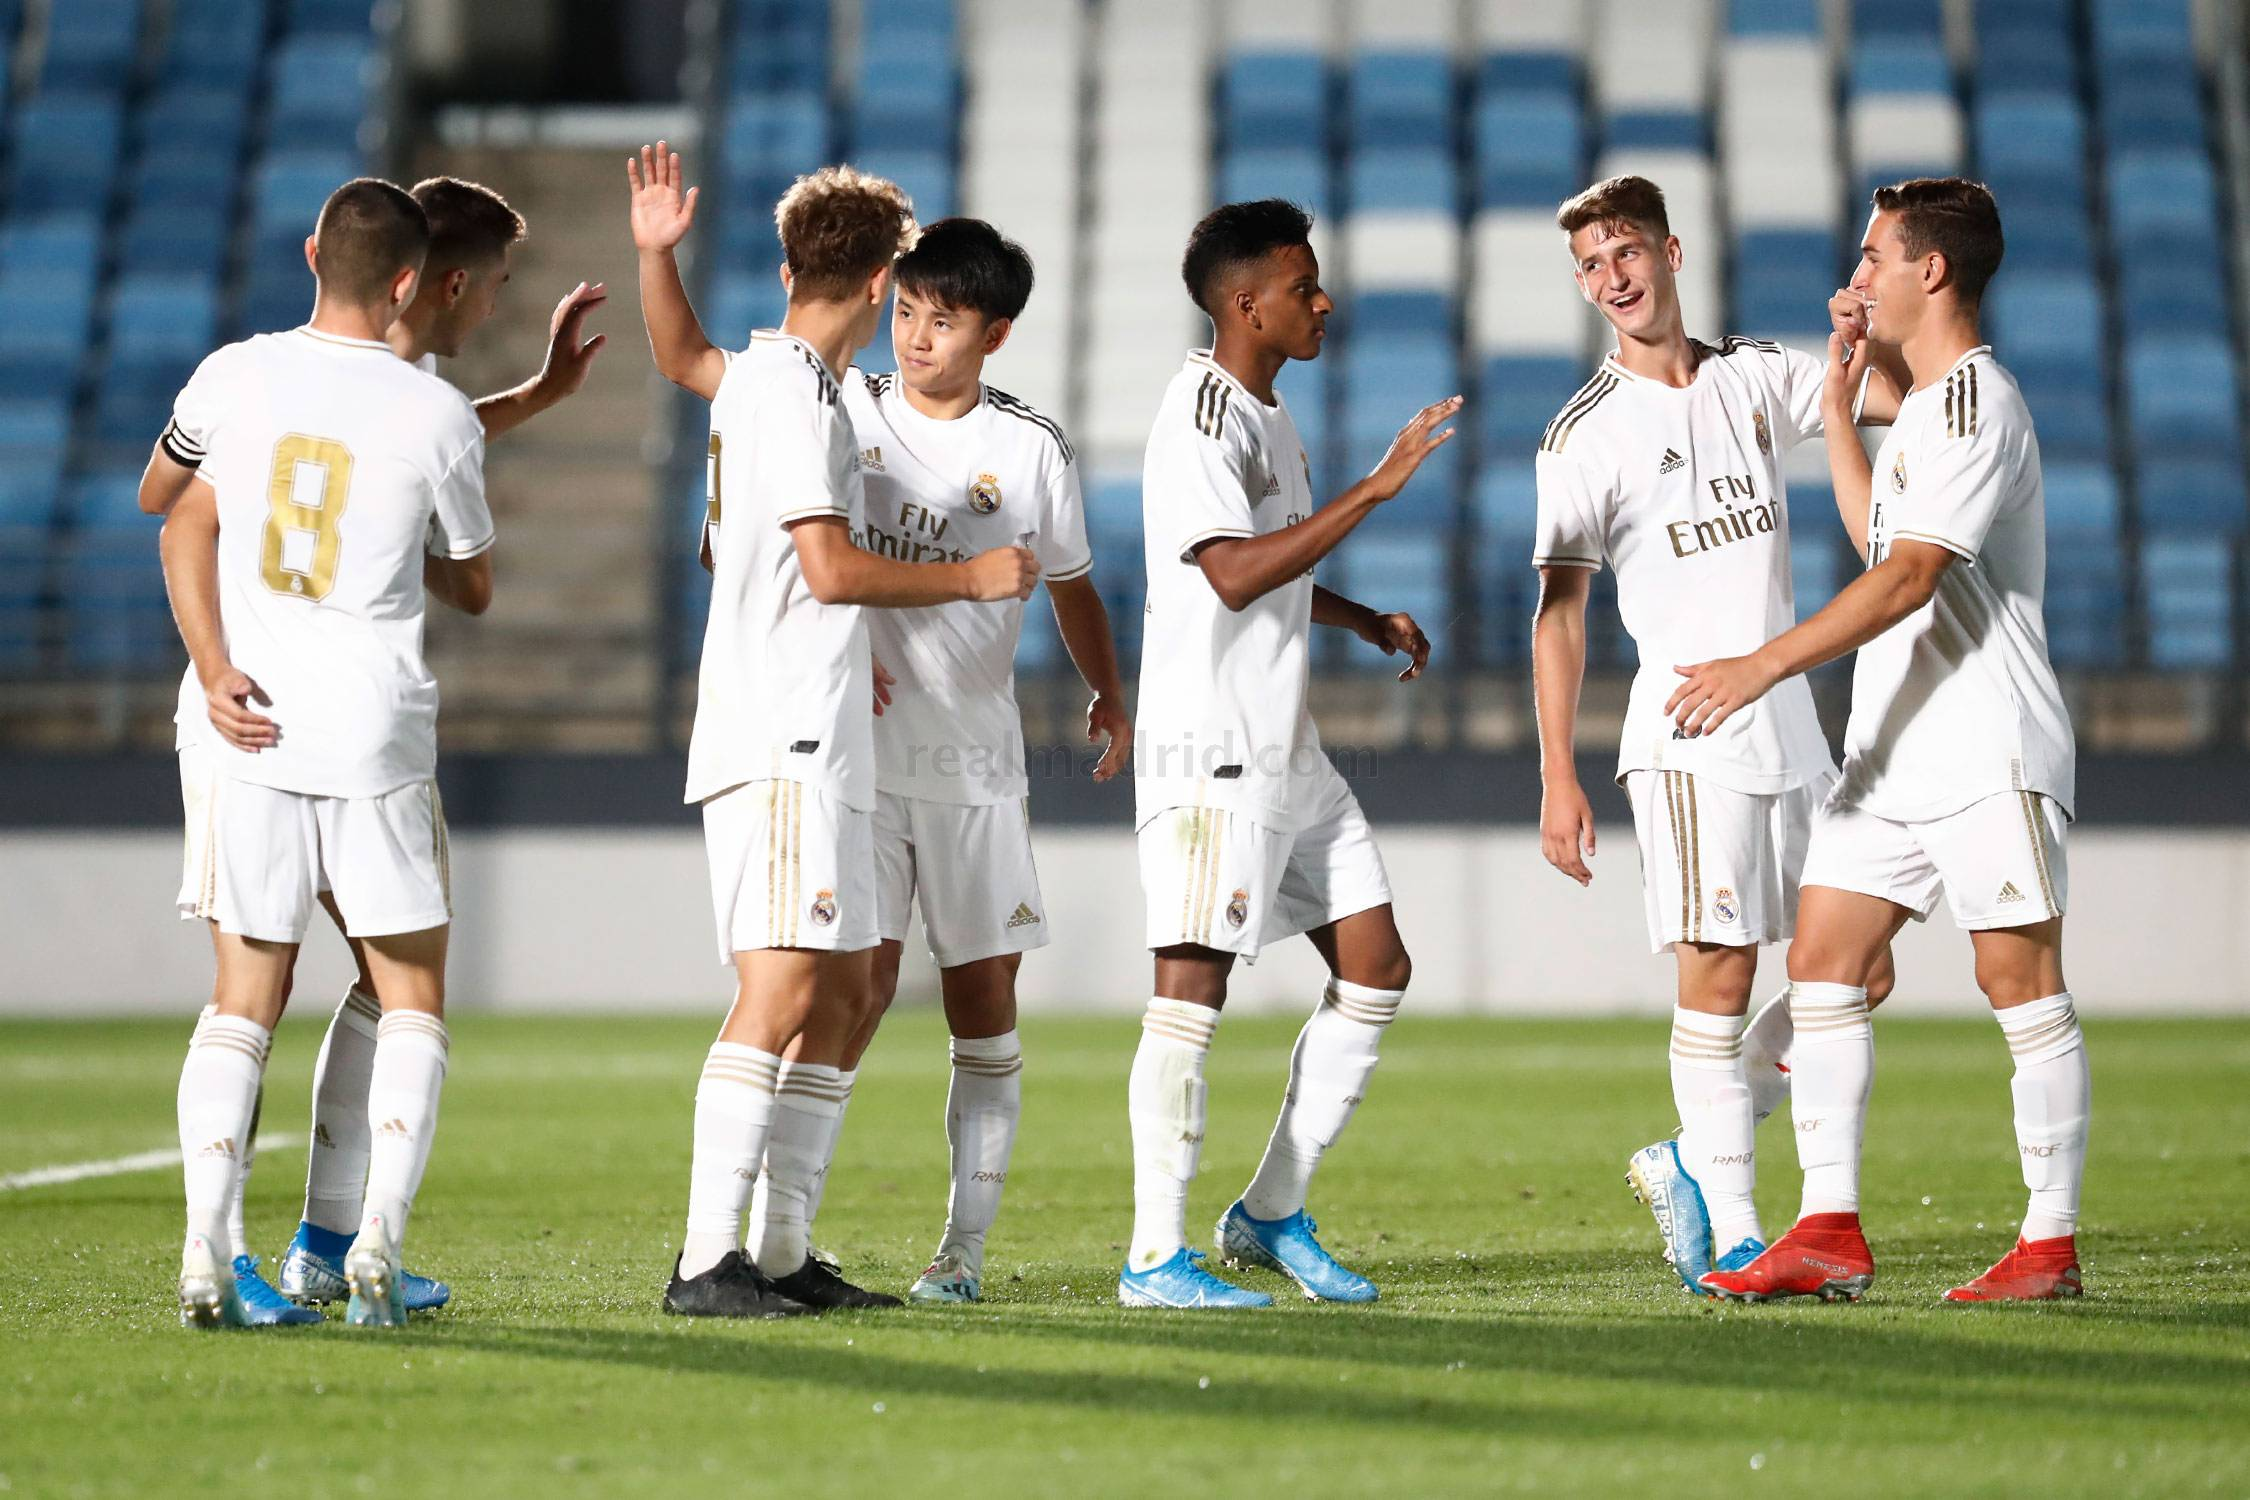 Real Madrid - Real Madrid Castilla - Alcorcón - 07-08-2019